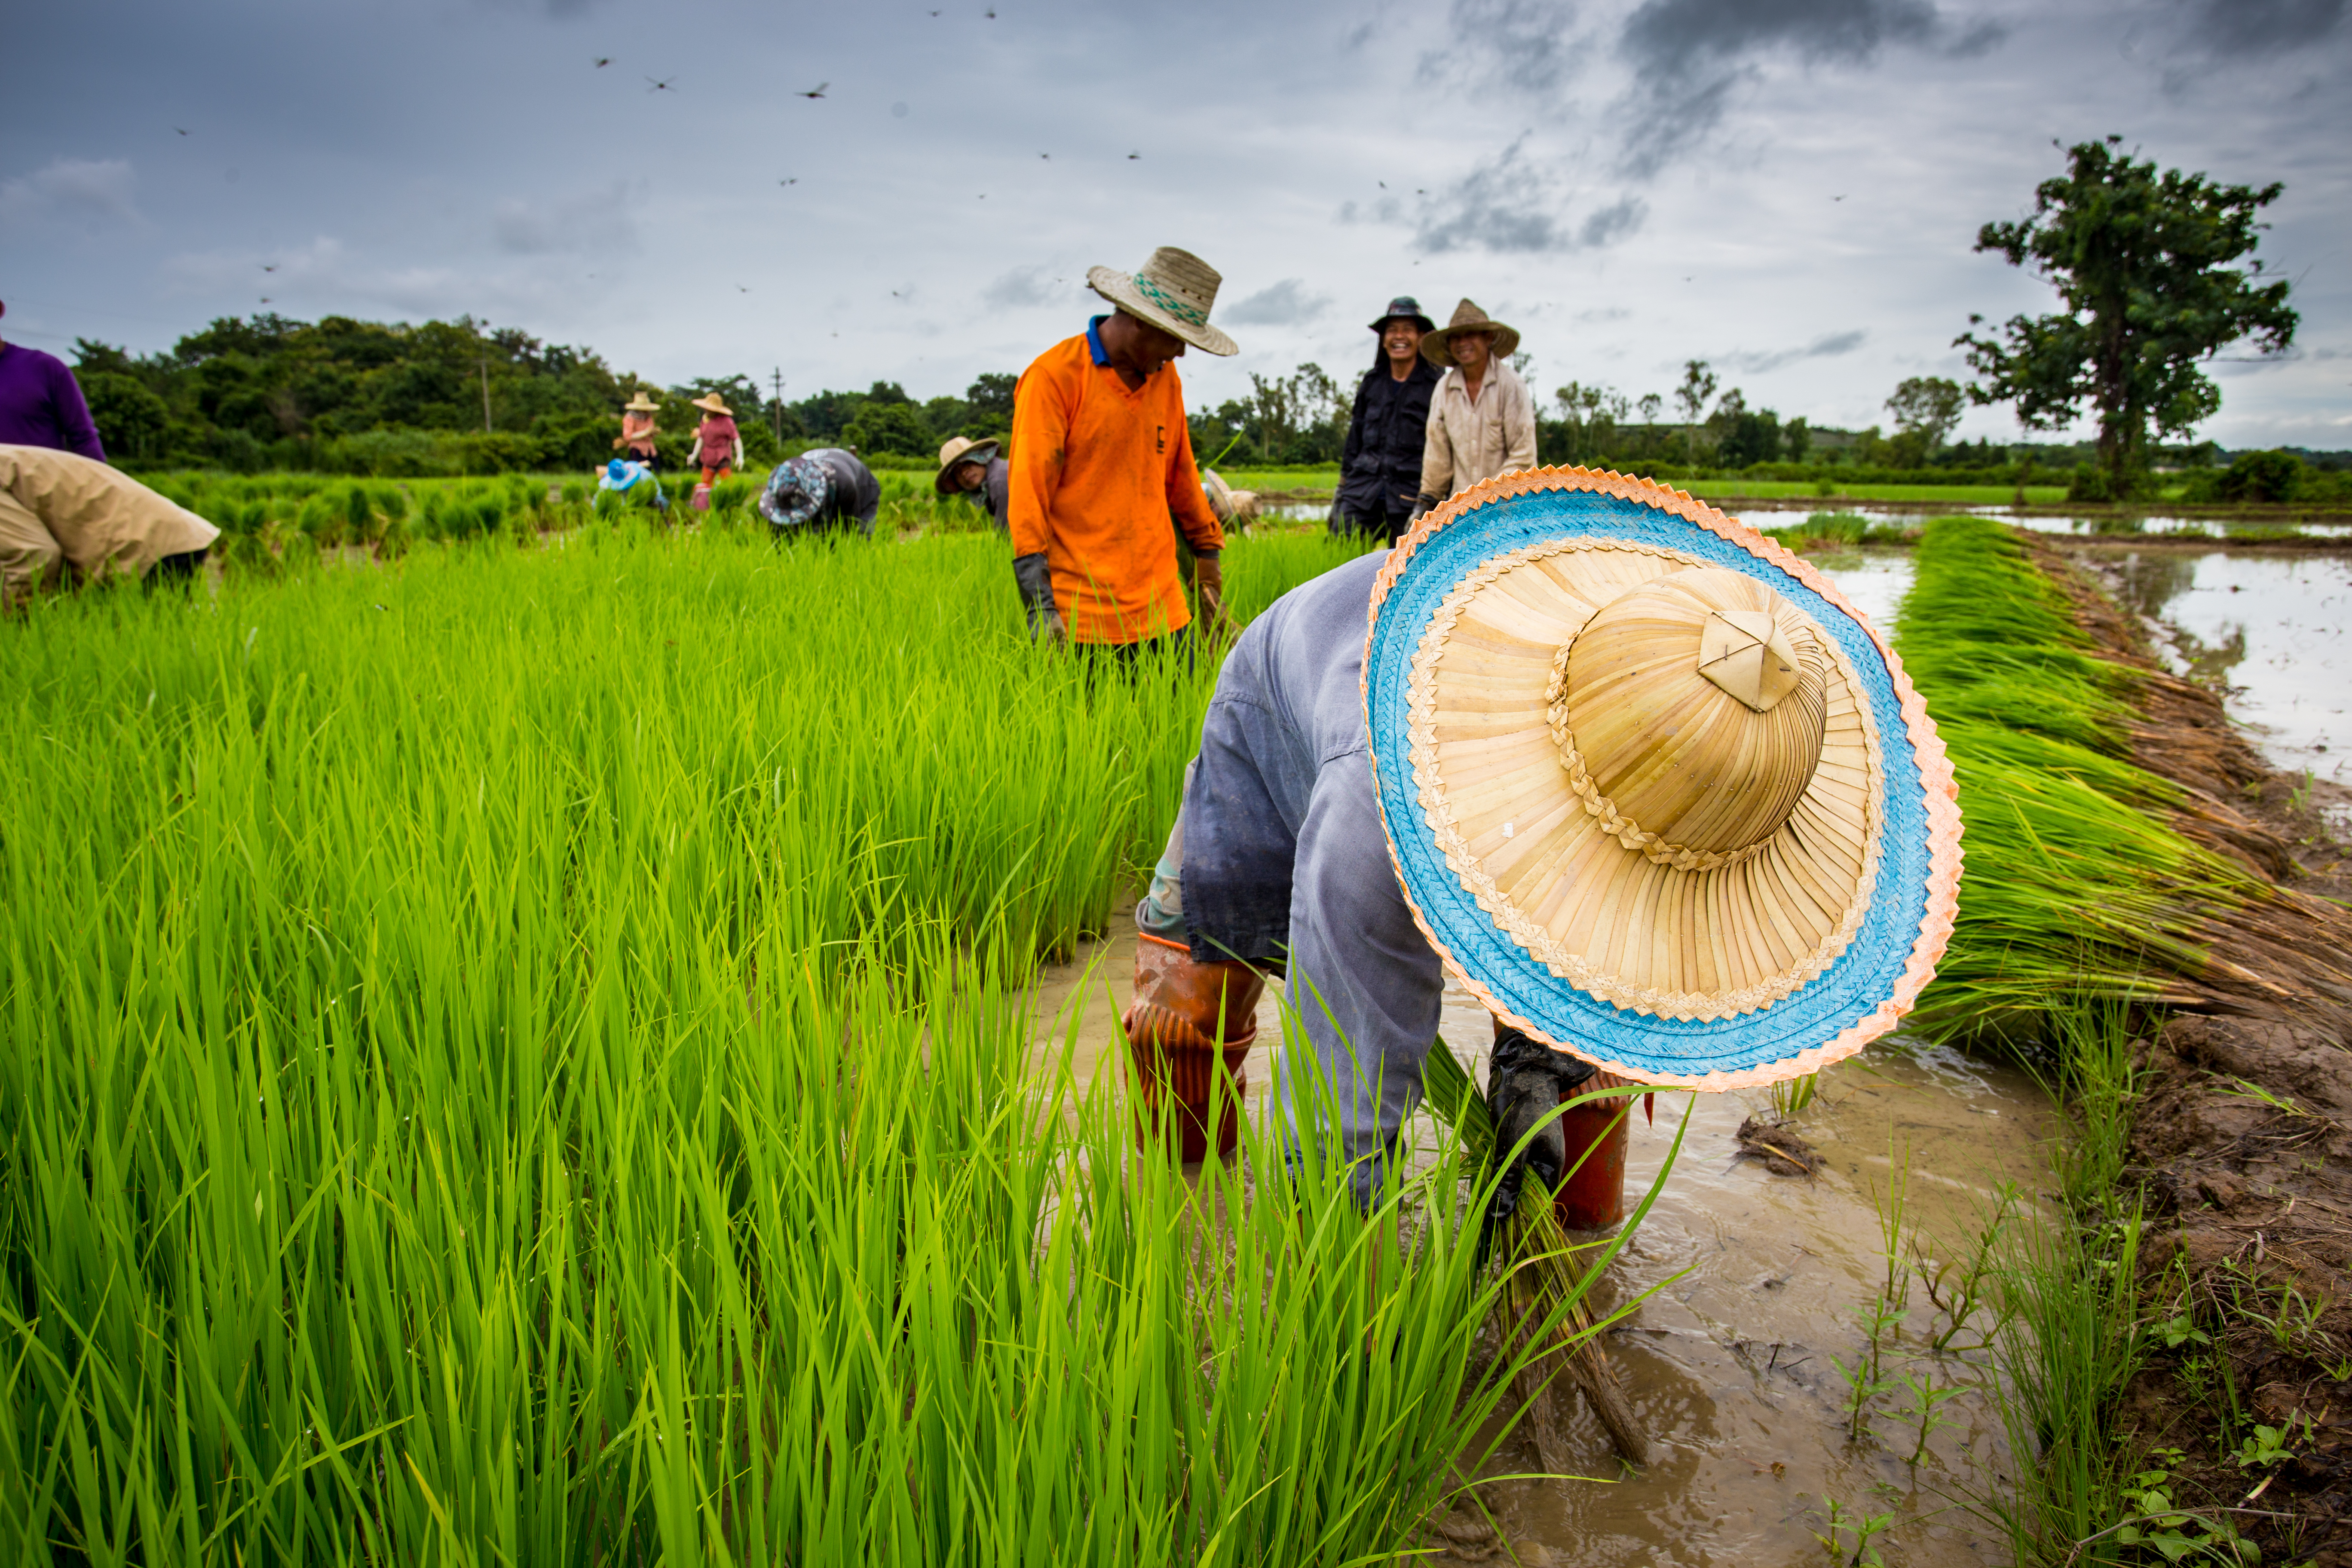 farmers_planting_rice_at_daytime-scopio-